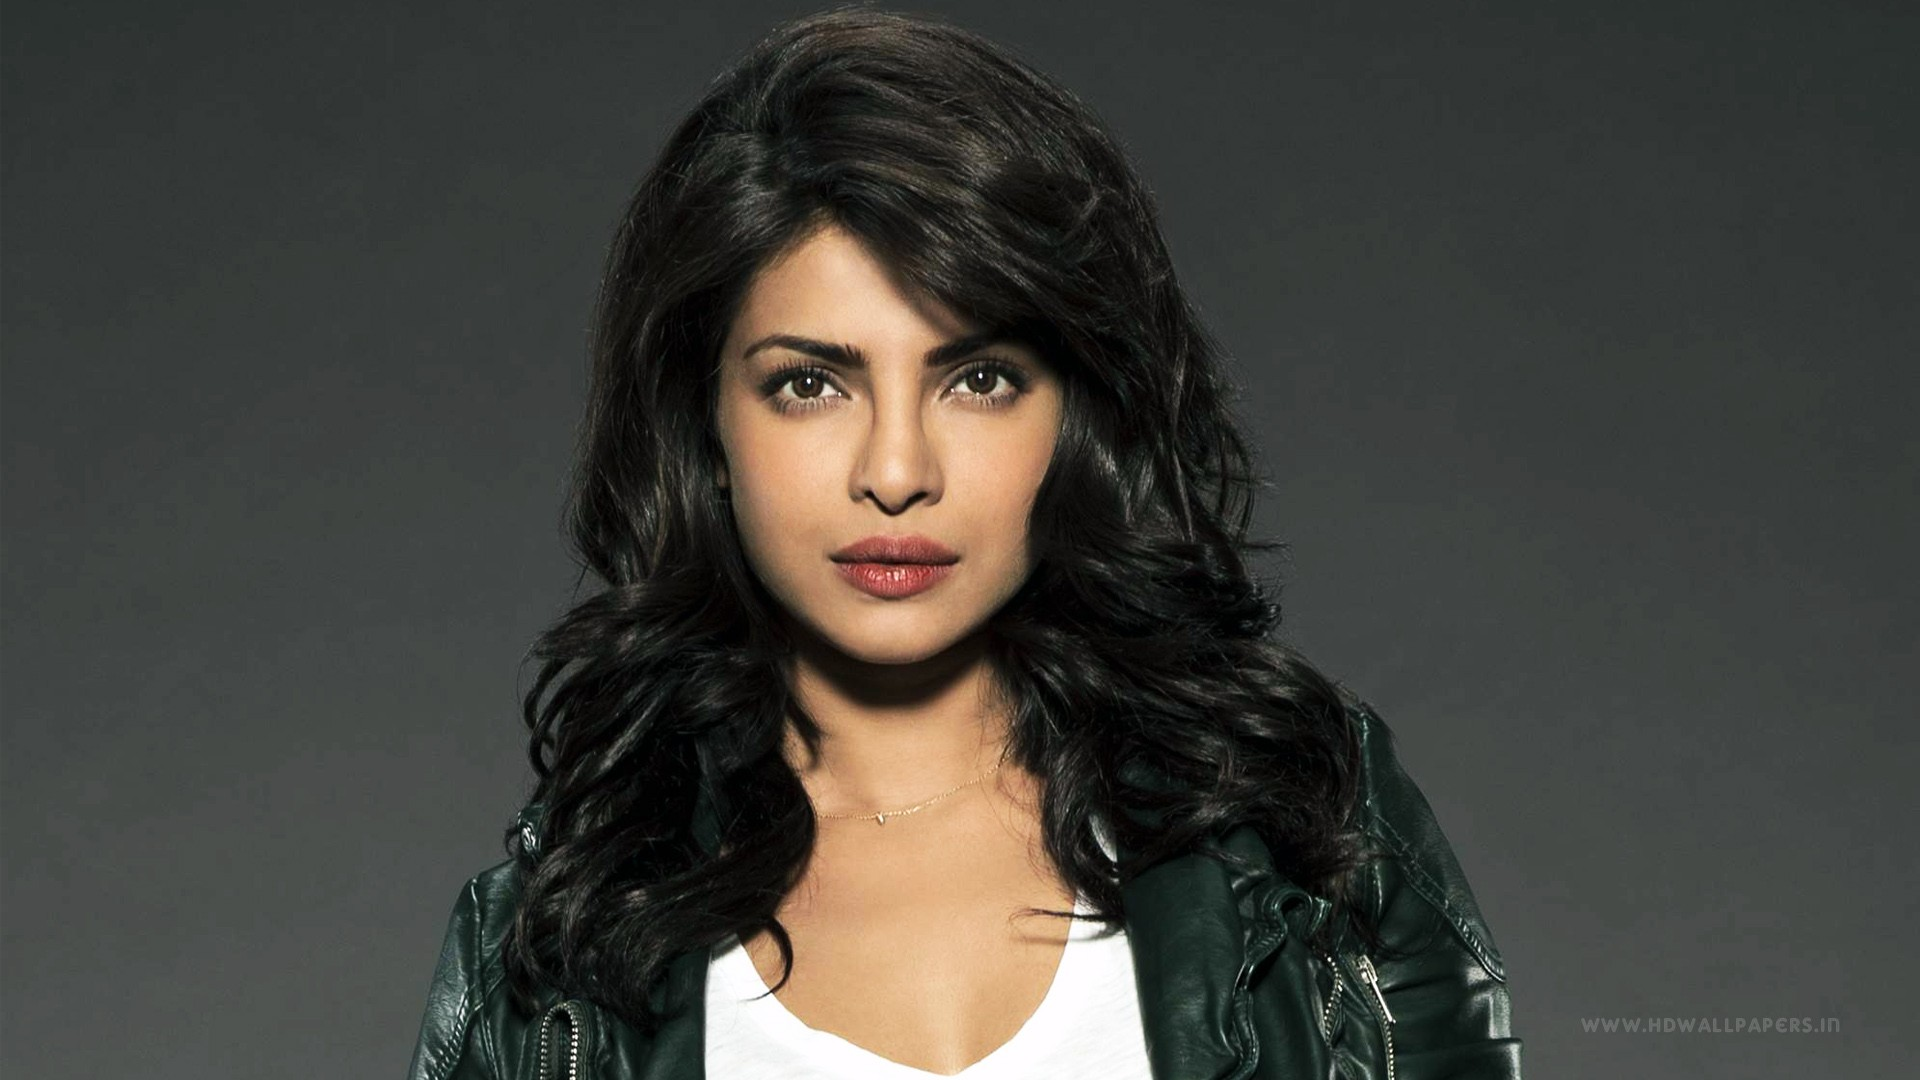 Cute Hollywood Actress Hd Wallpapers Priyanka Chopra 36 Wallpapers Hd Wallpapers Id 16266